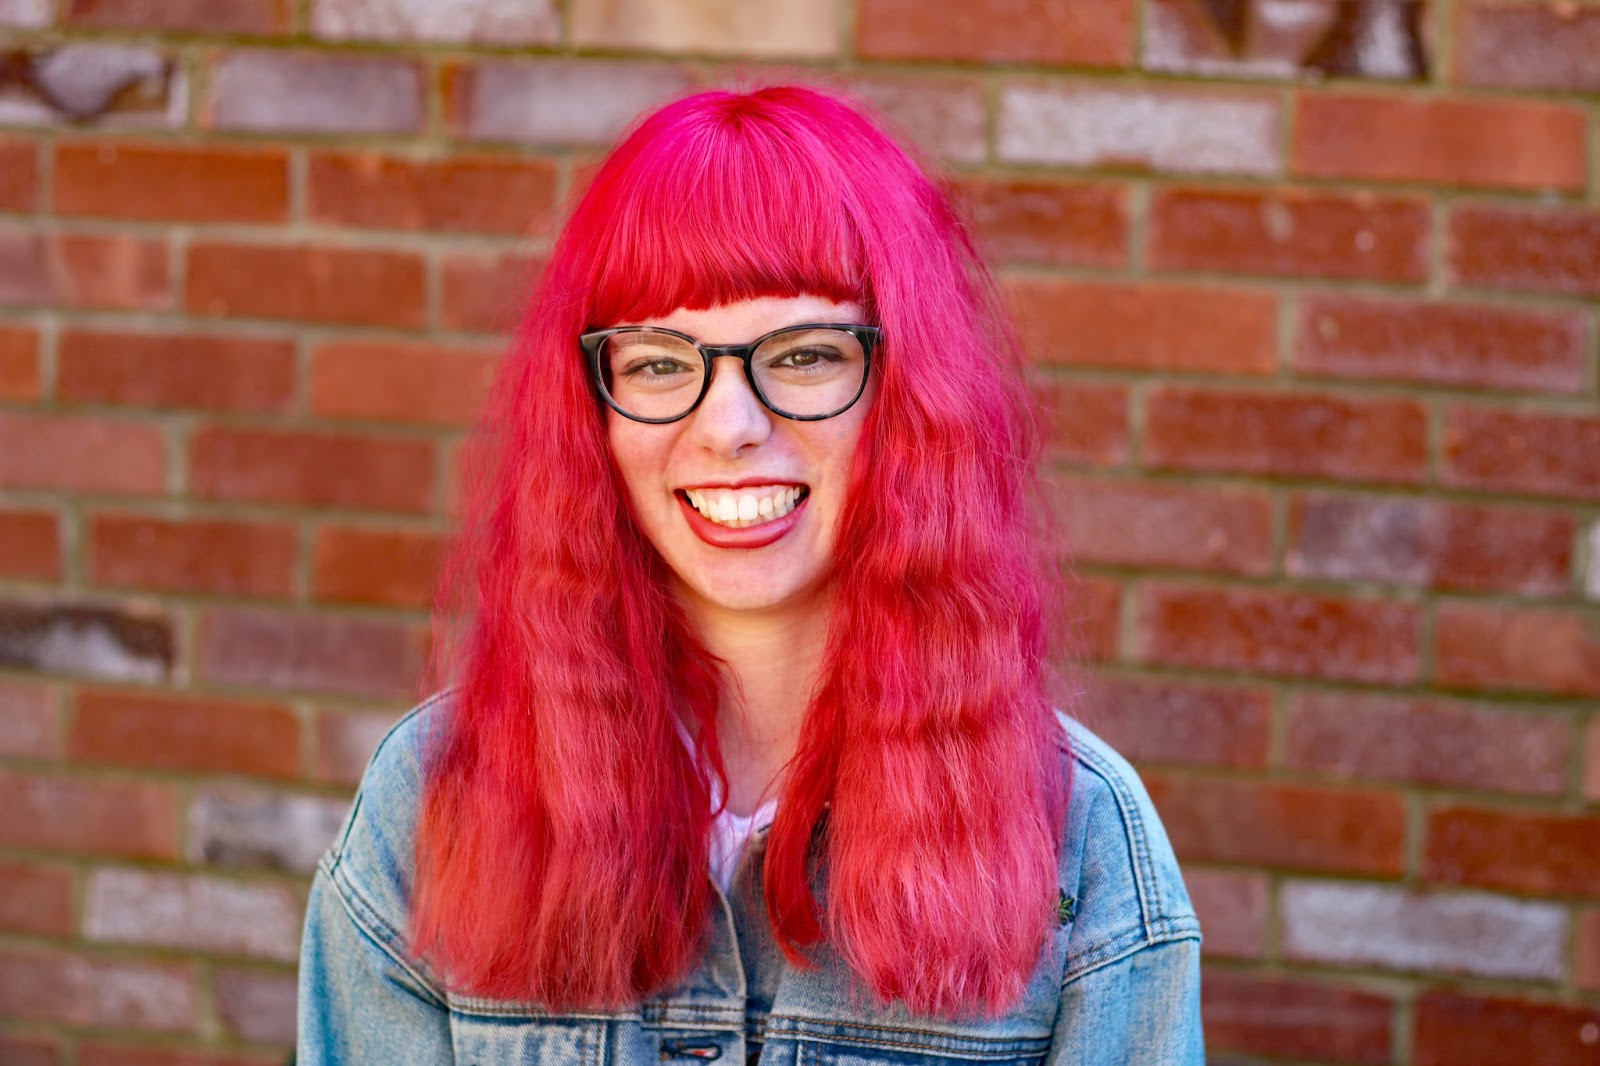 Let's Talk About Confidence body positivity happiness smile pink hair blogger UK mental health wellbeing